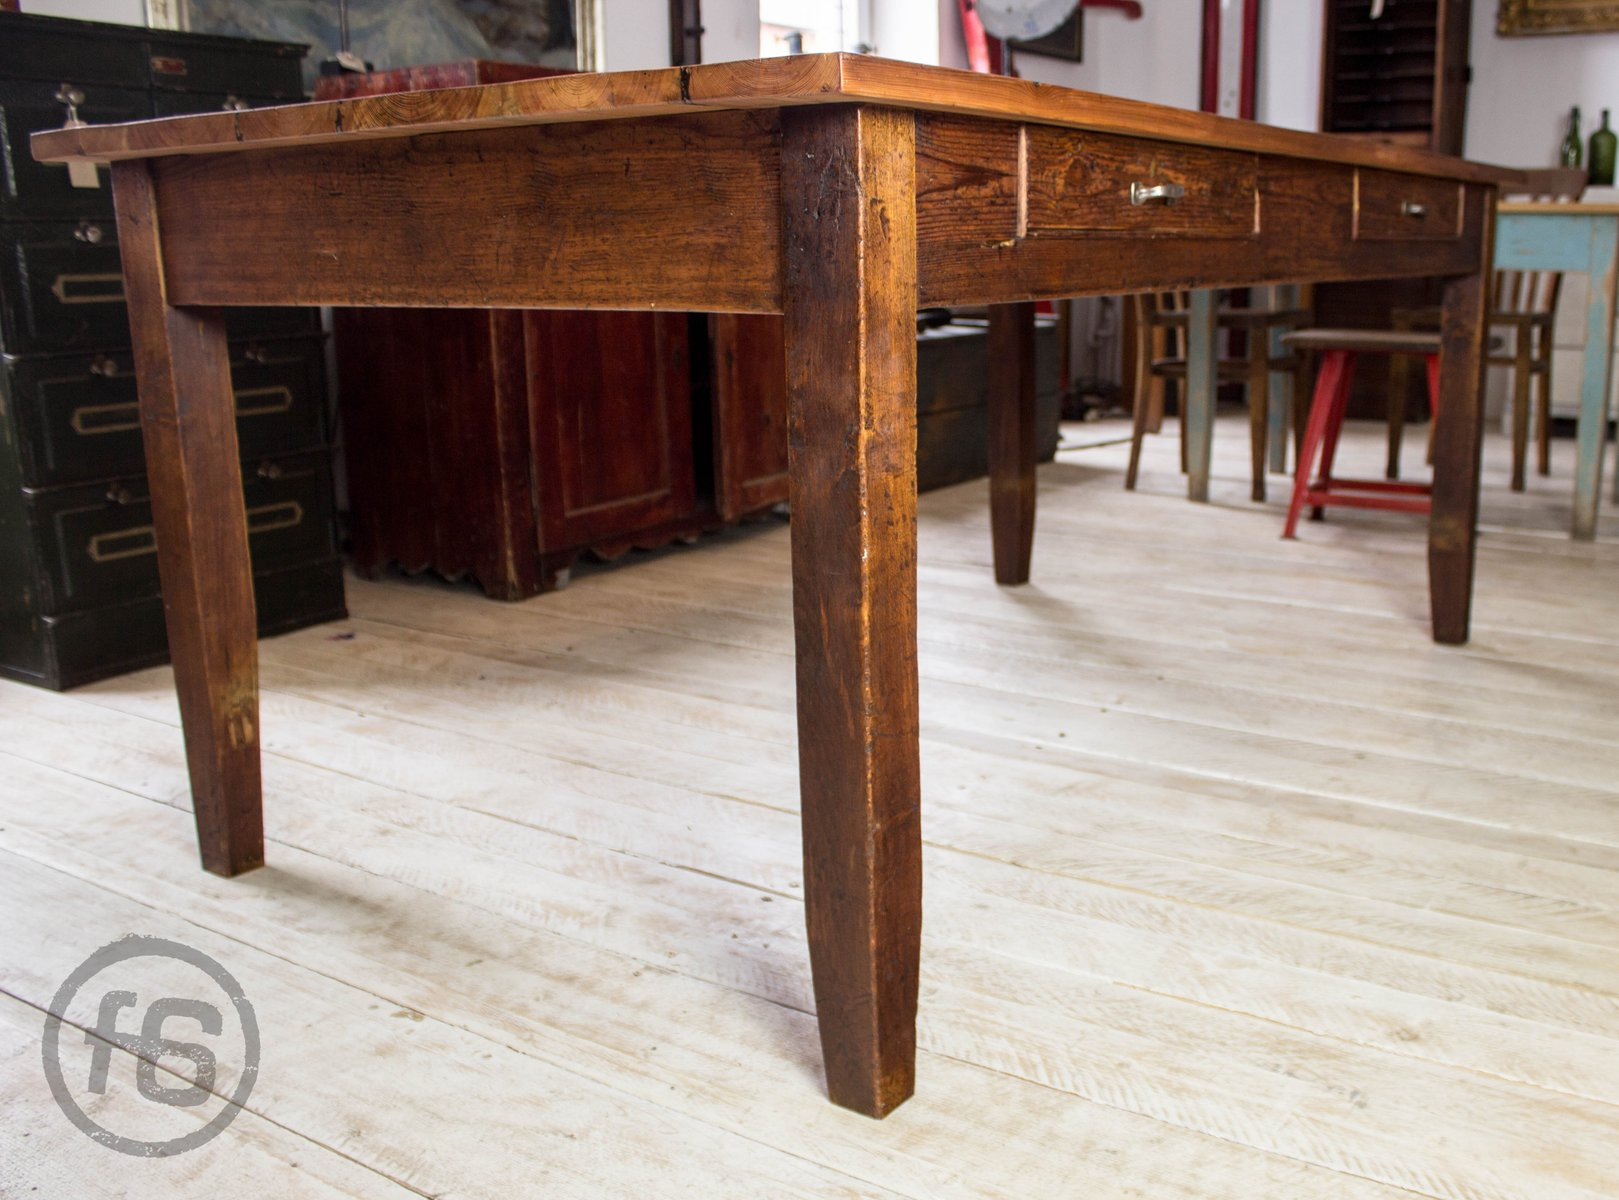 Antique Dining Table in Pine for sale at Pamono